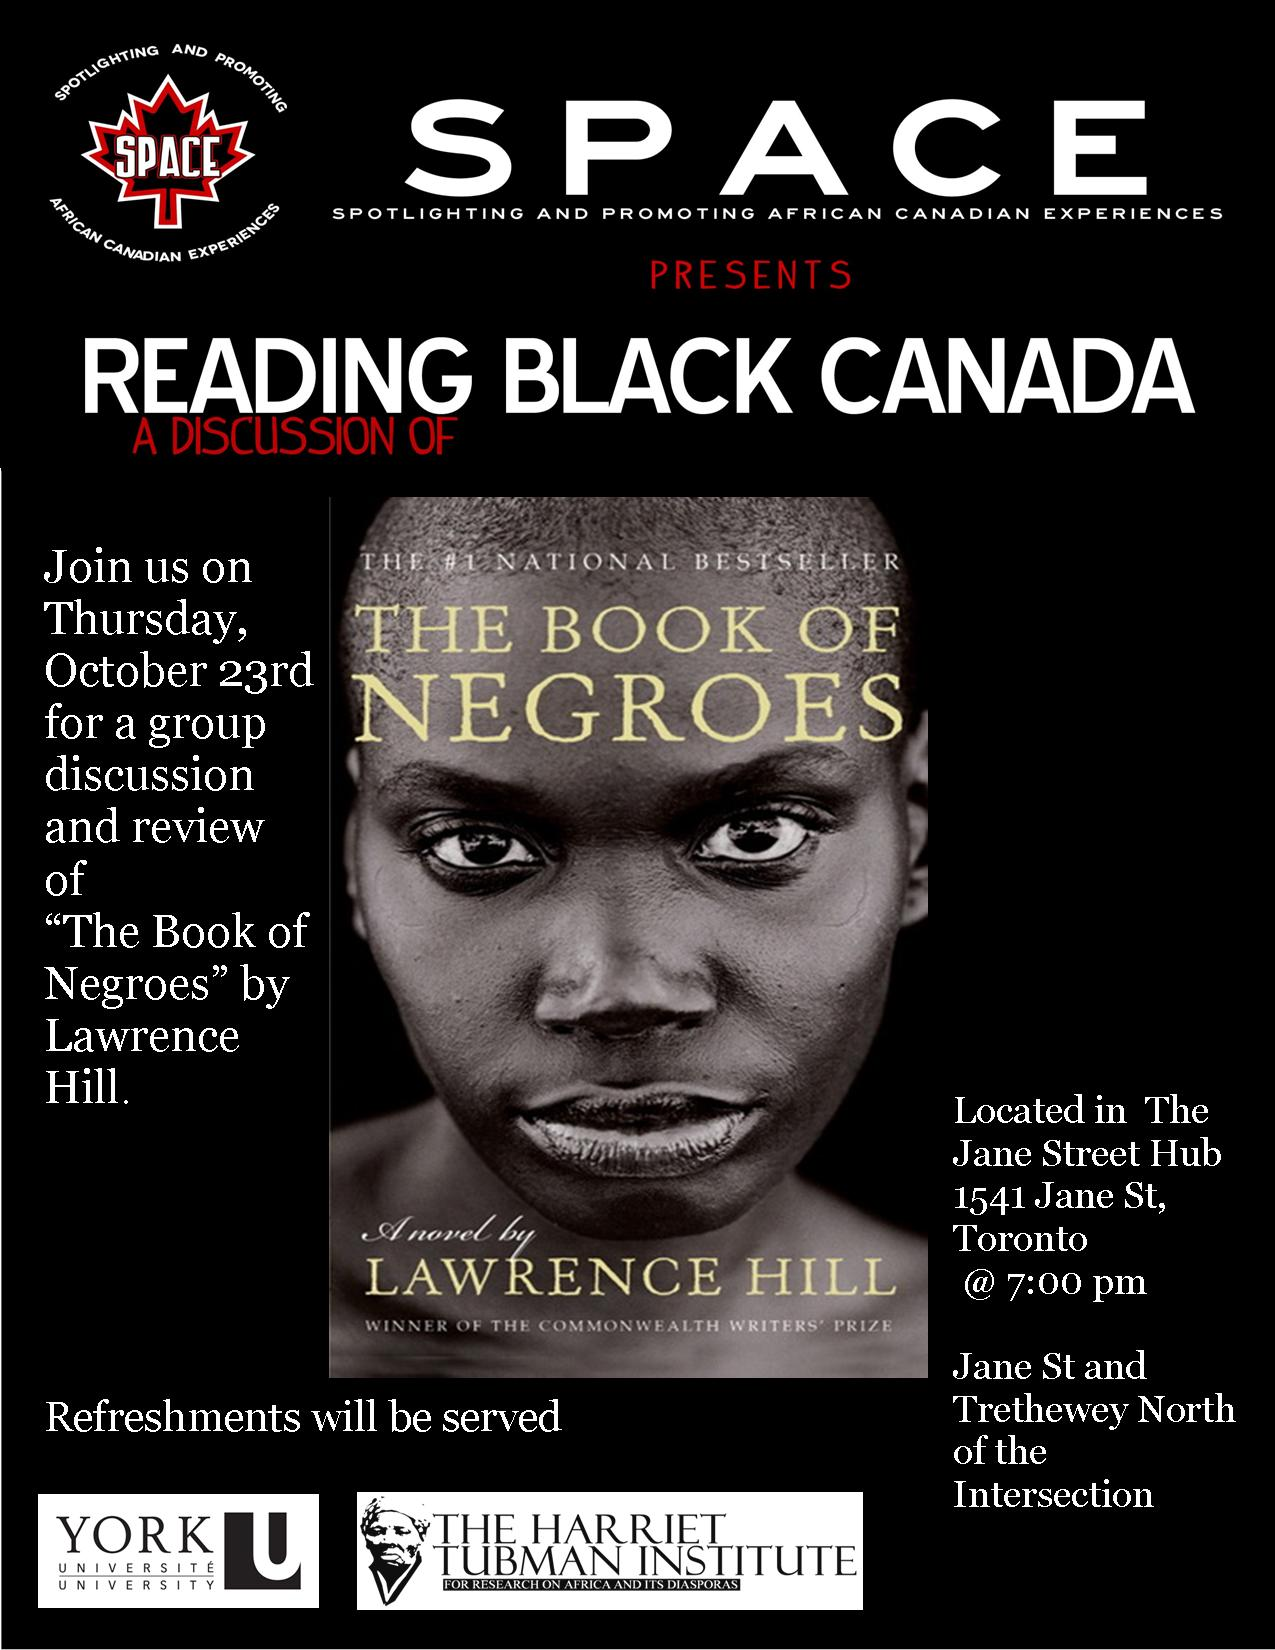 Reading Black Canada The Book of Negroes